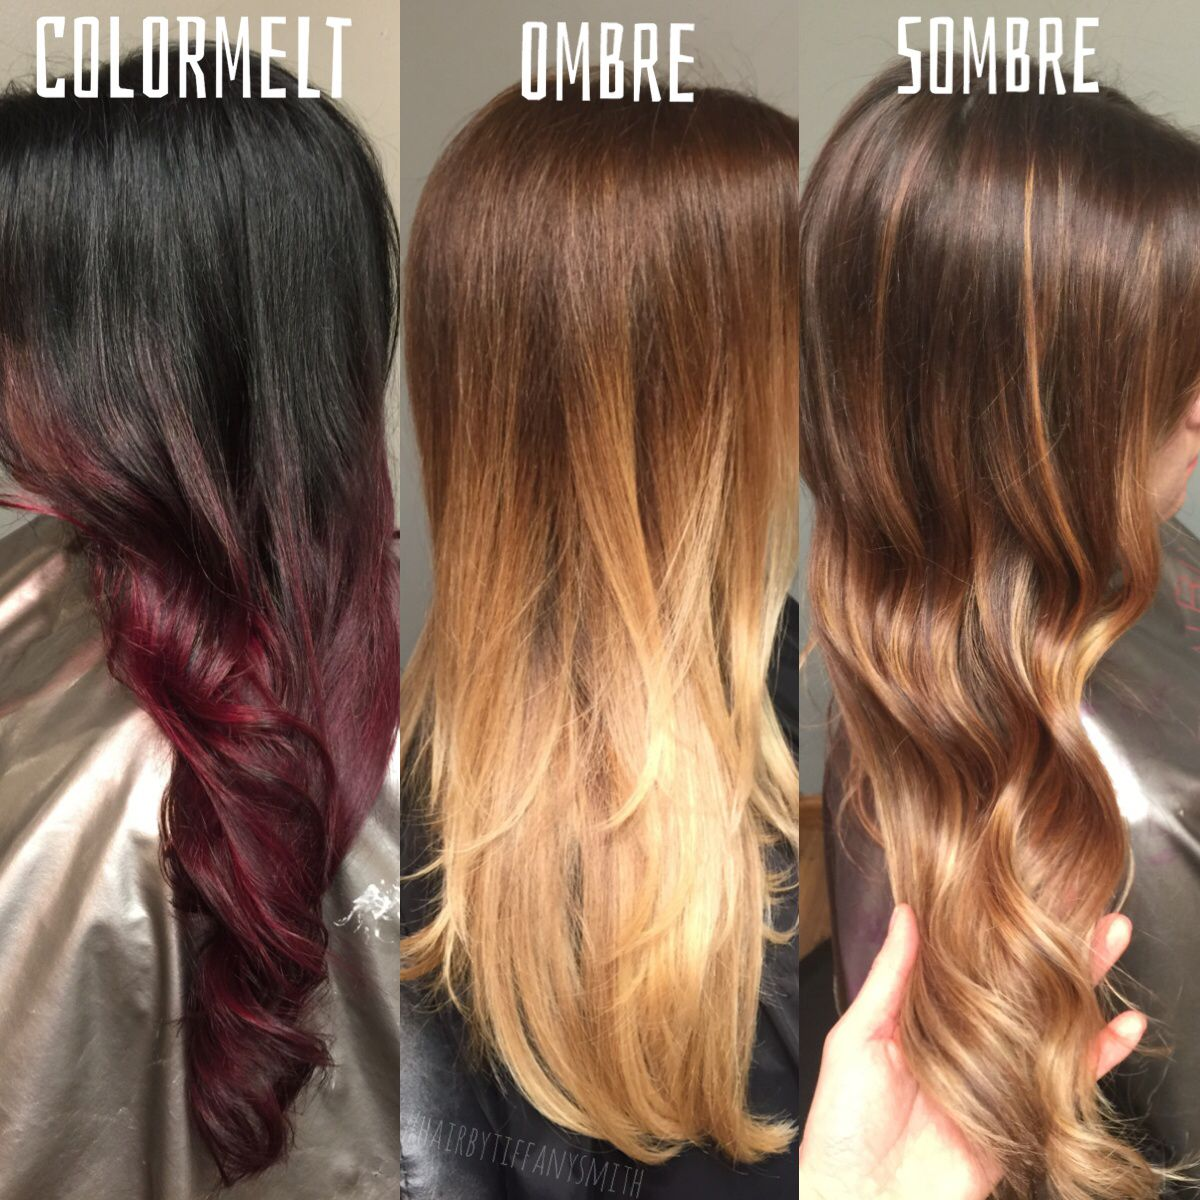 The Difference Between Colormelt Ombre And Sombre Hair